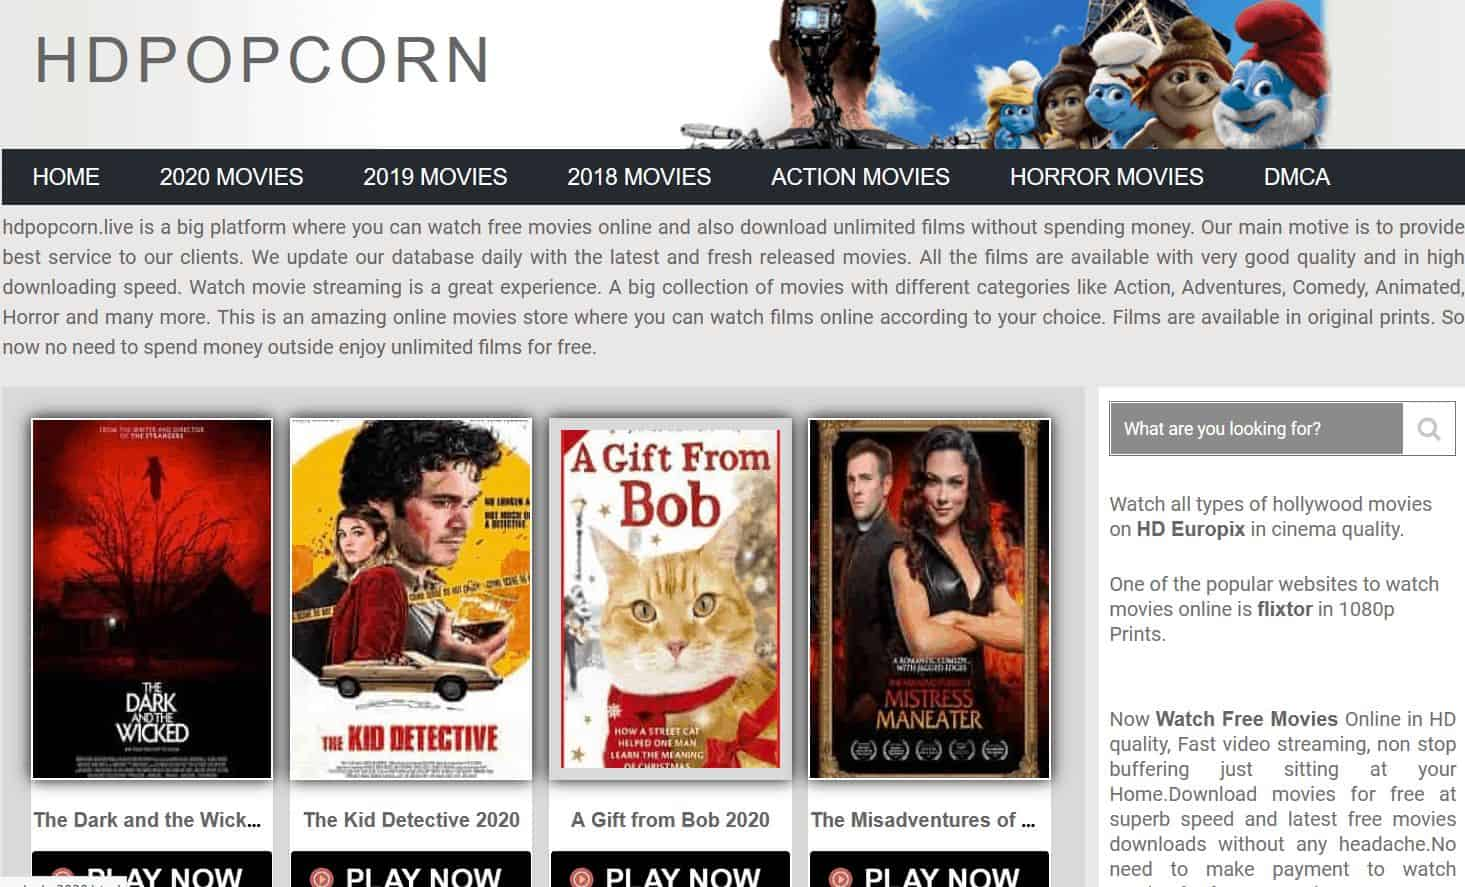 Popcornflix - Alternatives to Putlocker, Watch movies online free full movie no sign up, Watch thousands of full-length movies and TV shows for free